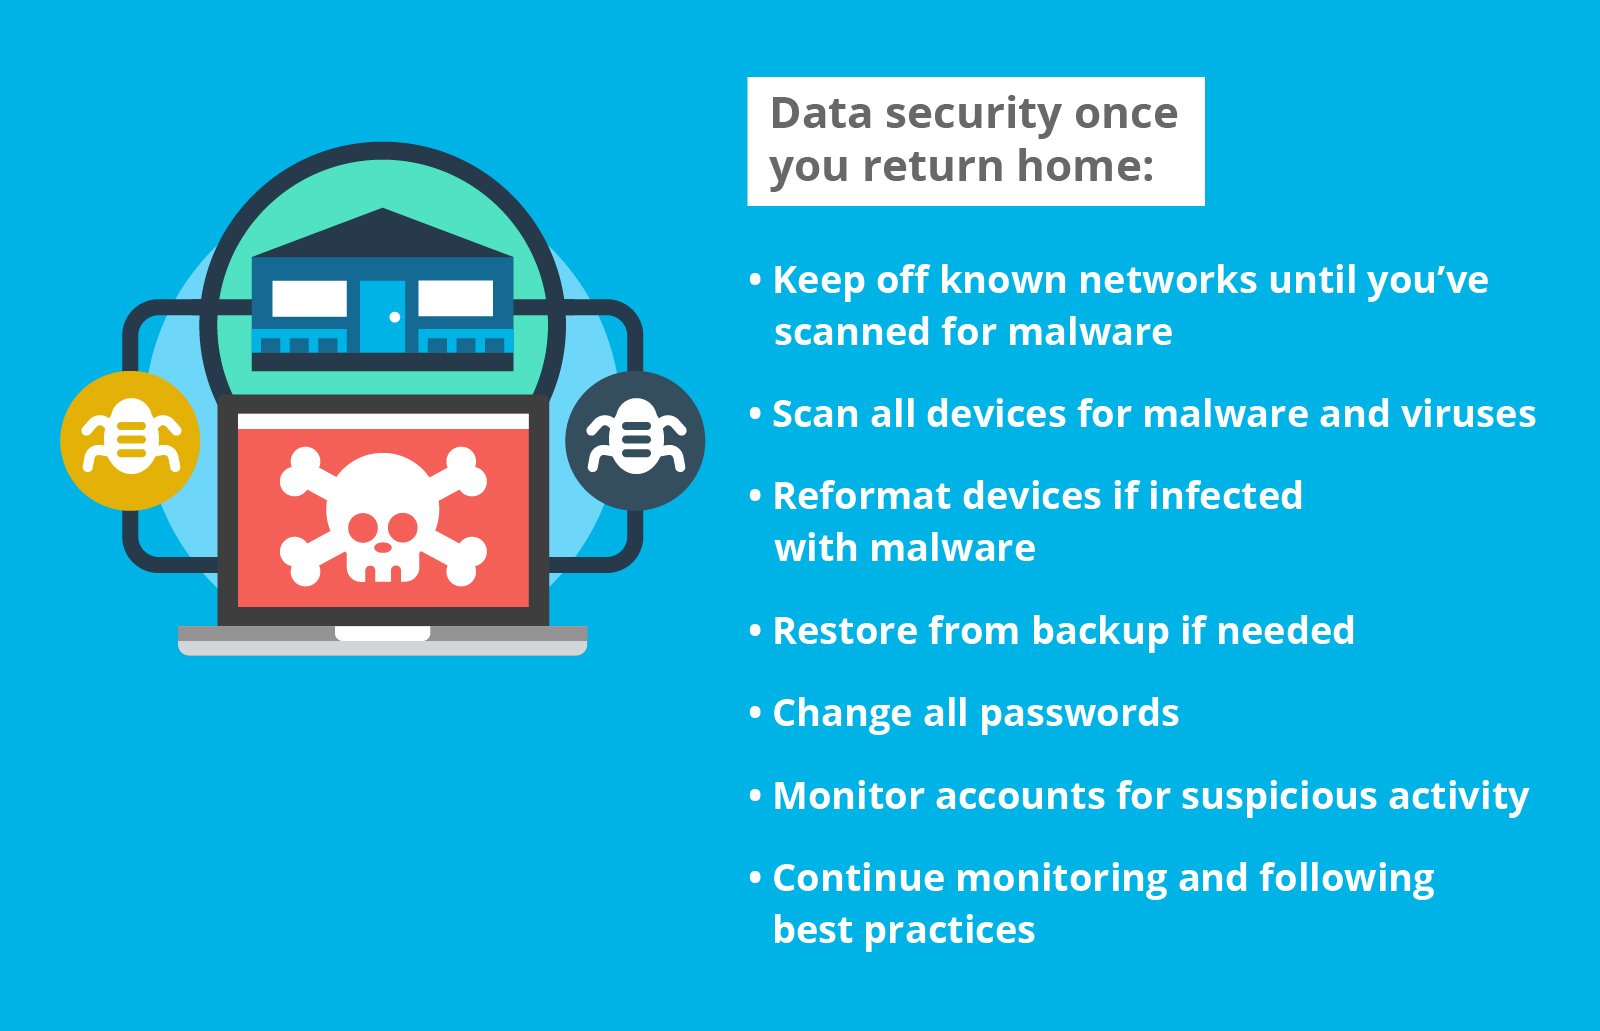 A list of tips on data security once you return home